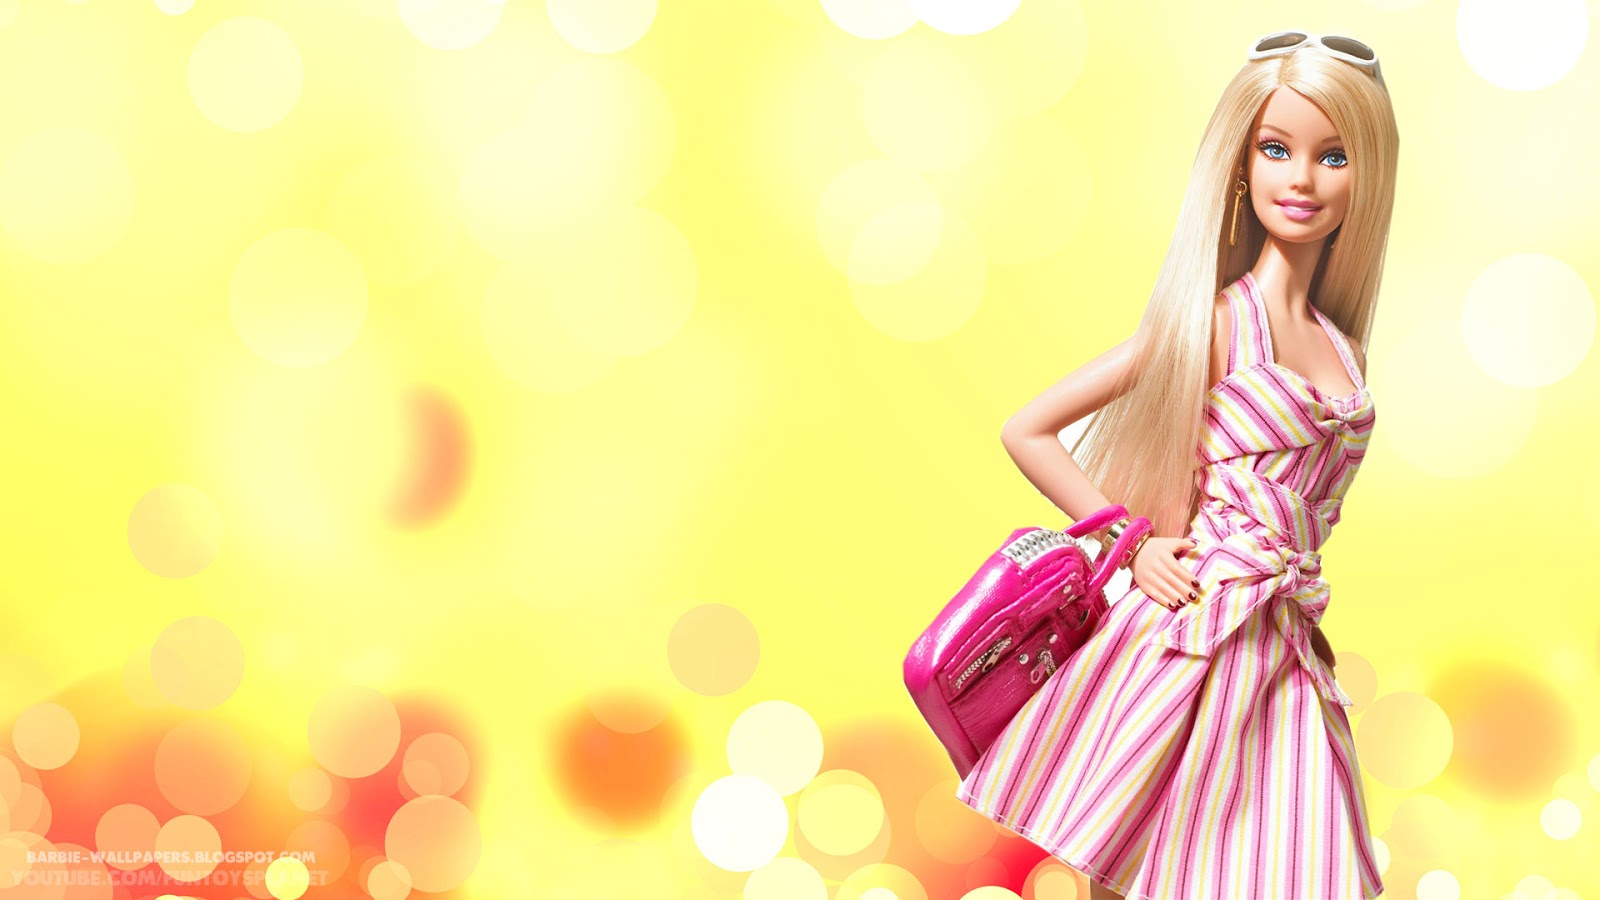 Barbie wallpapers barbie wallpapers for girls - Barbie images for wallpaper ...